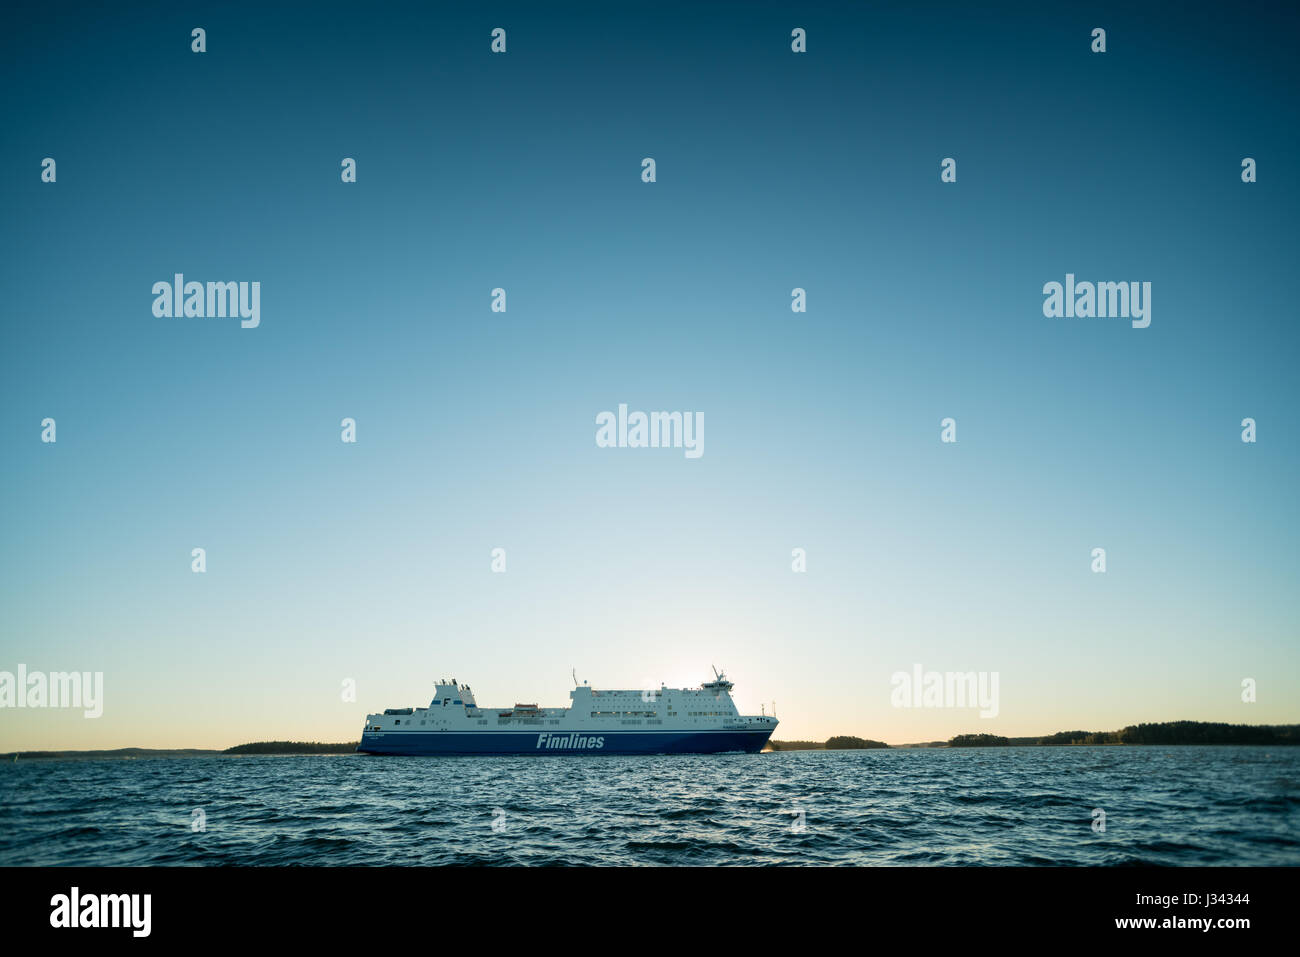 Finnlines ropax ferry seen from Ruissalo sailing towards Naantali Harbour, Finland - Stock Image